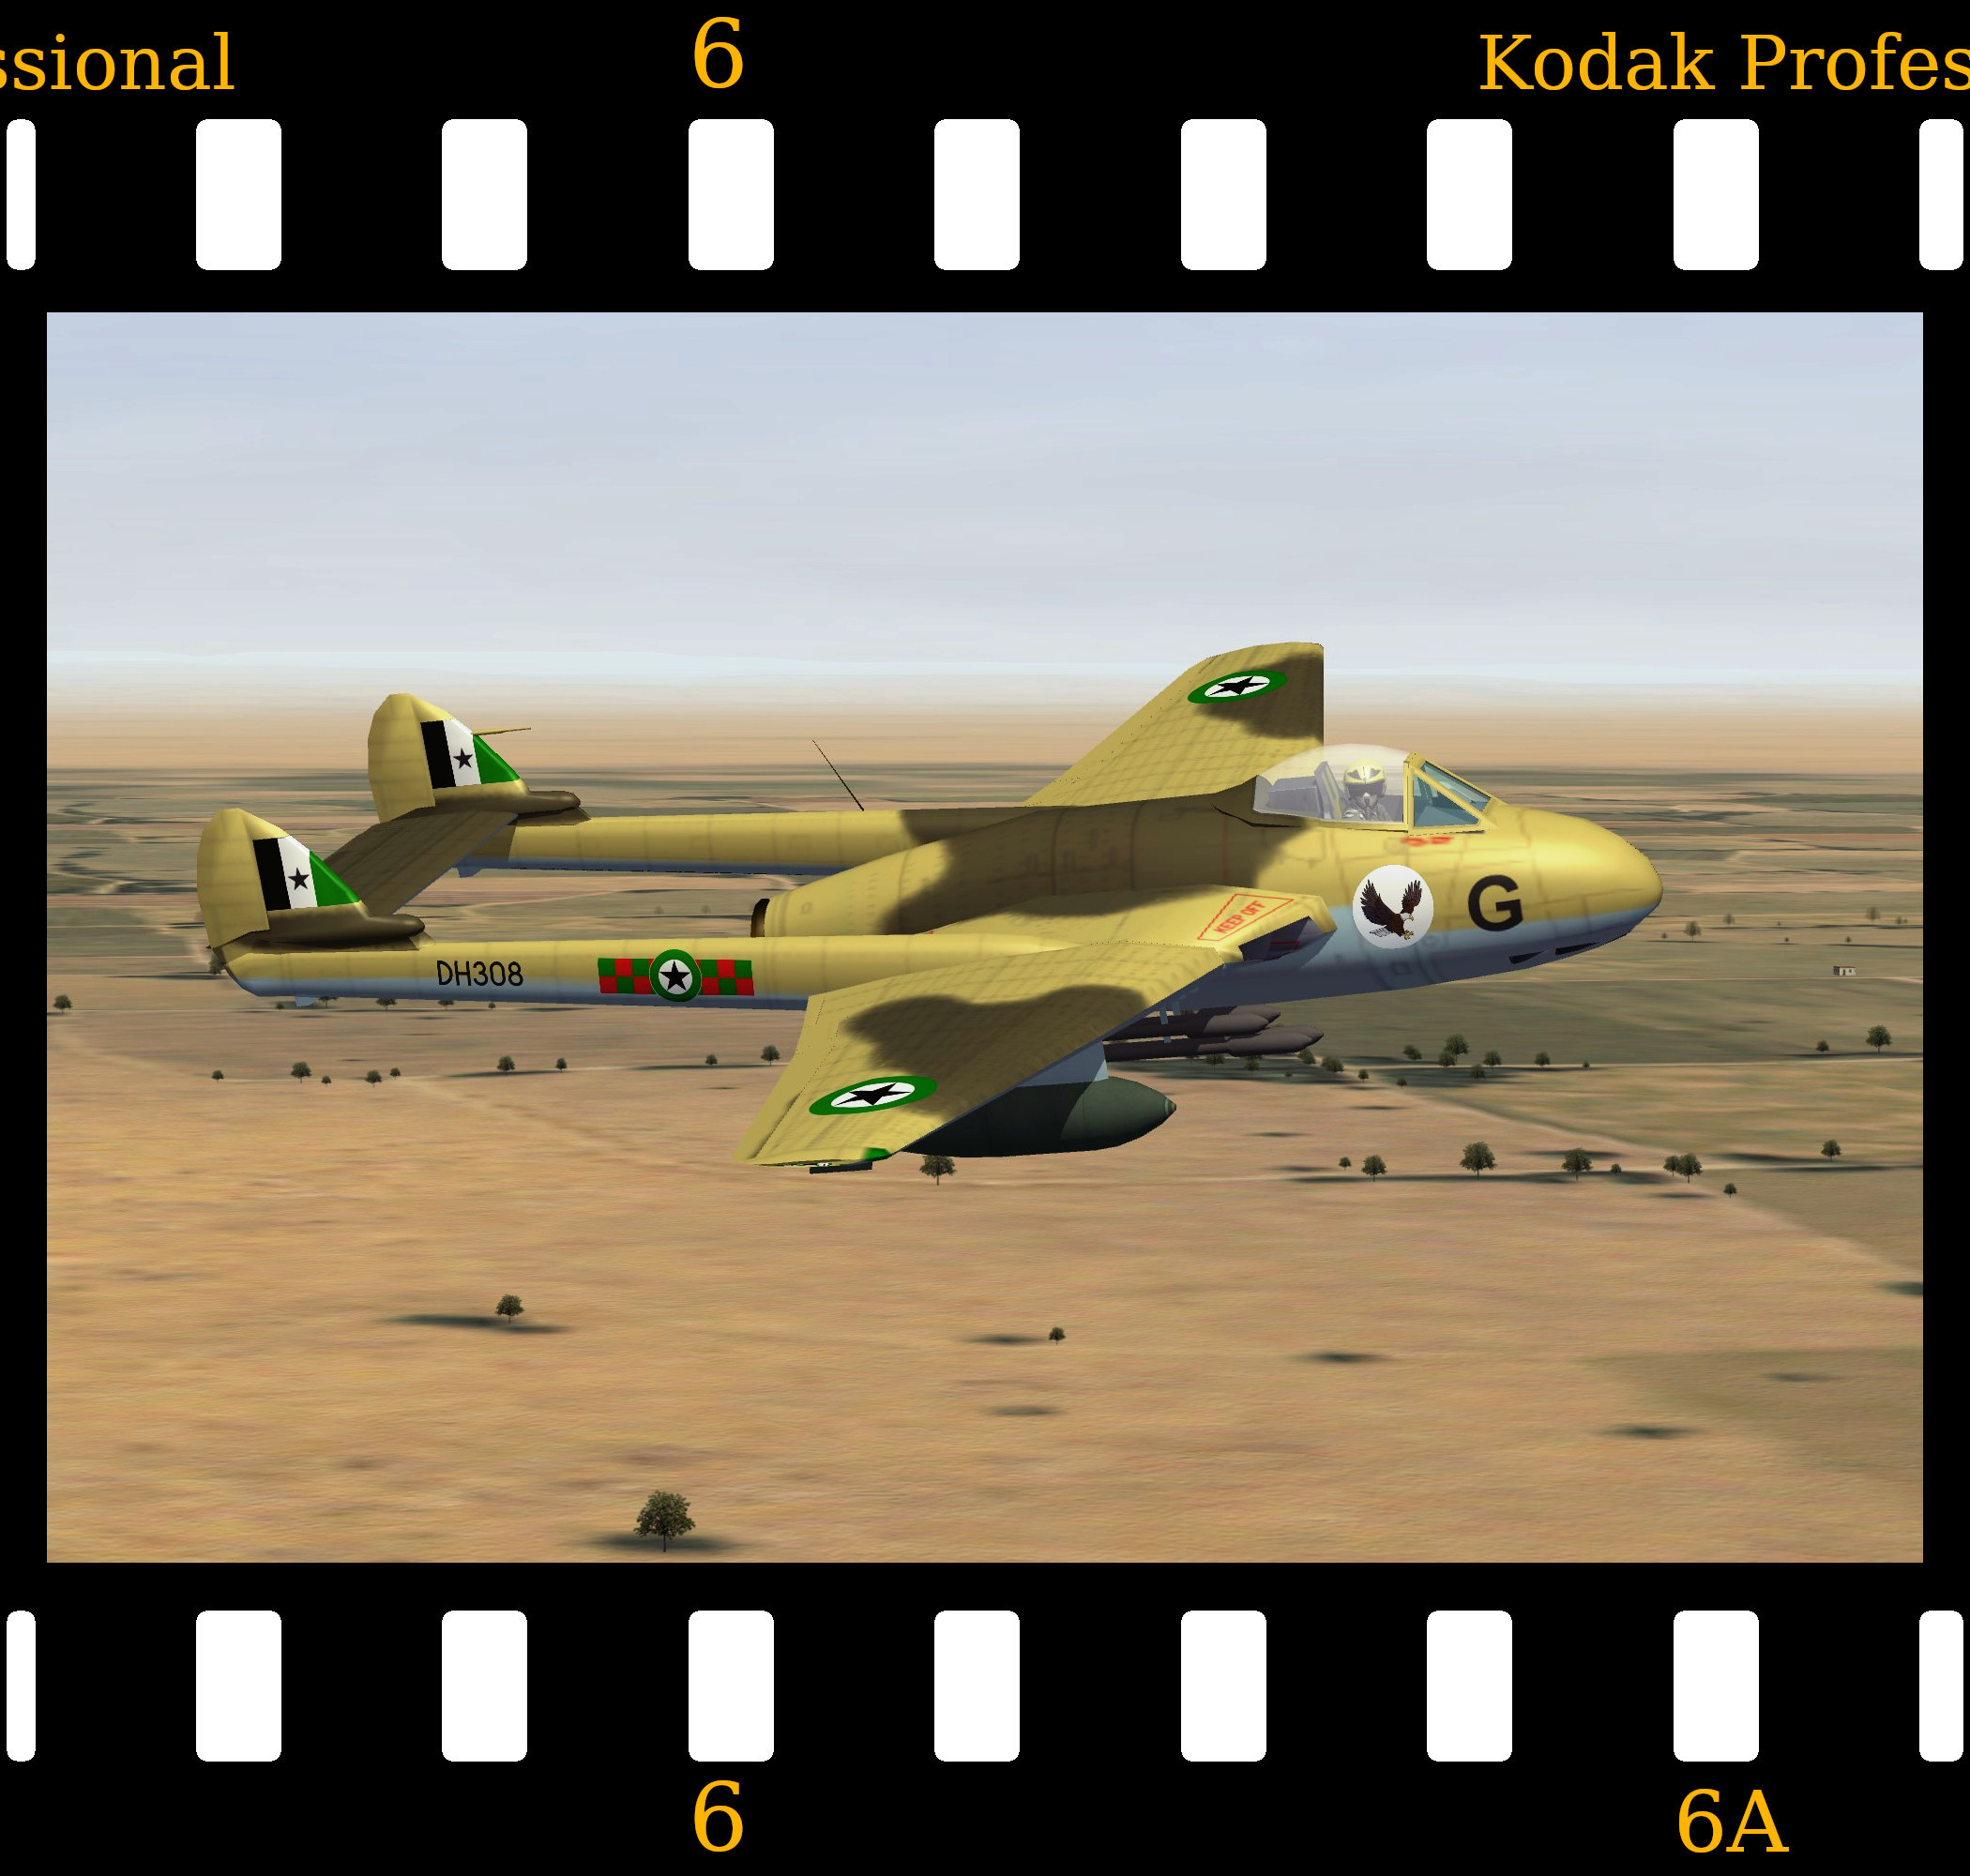 [Fictional] de Havilland Vampire FB.7 for SF2